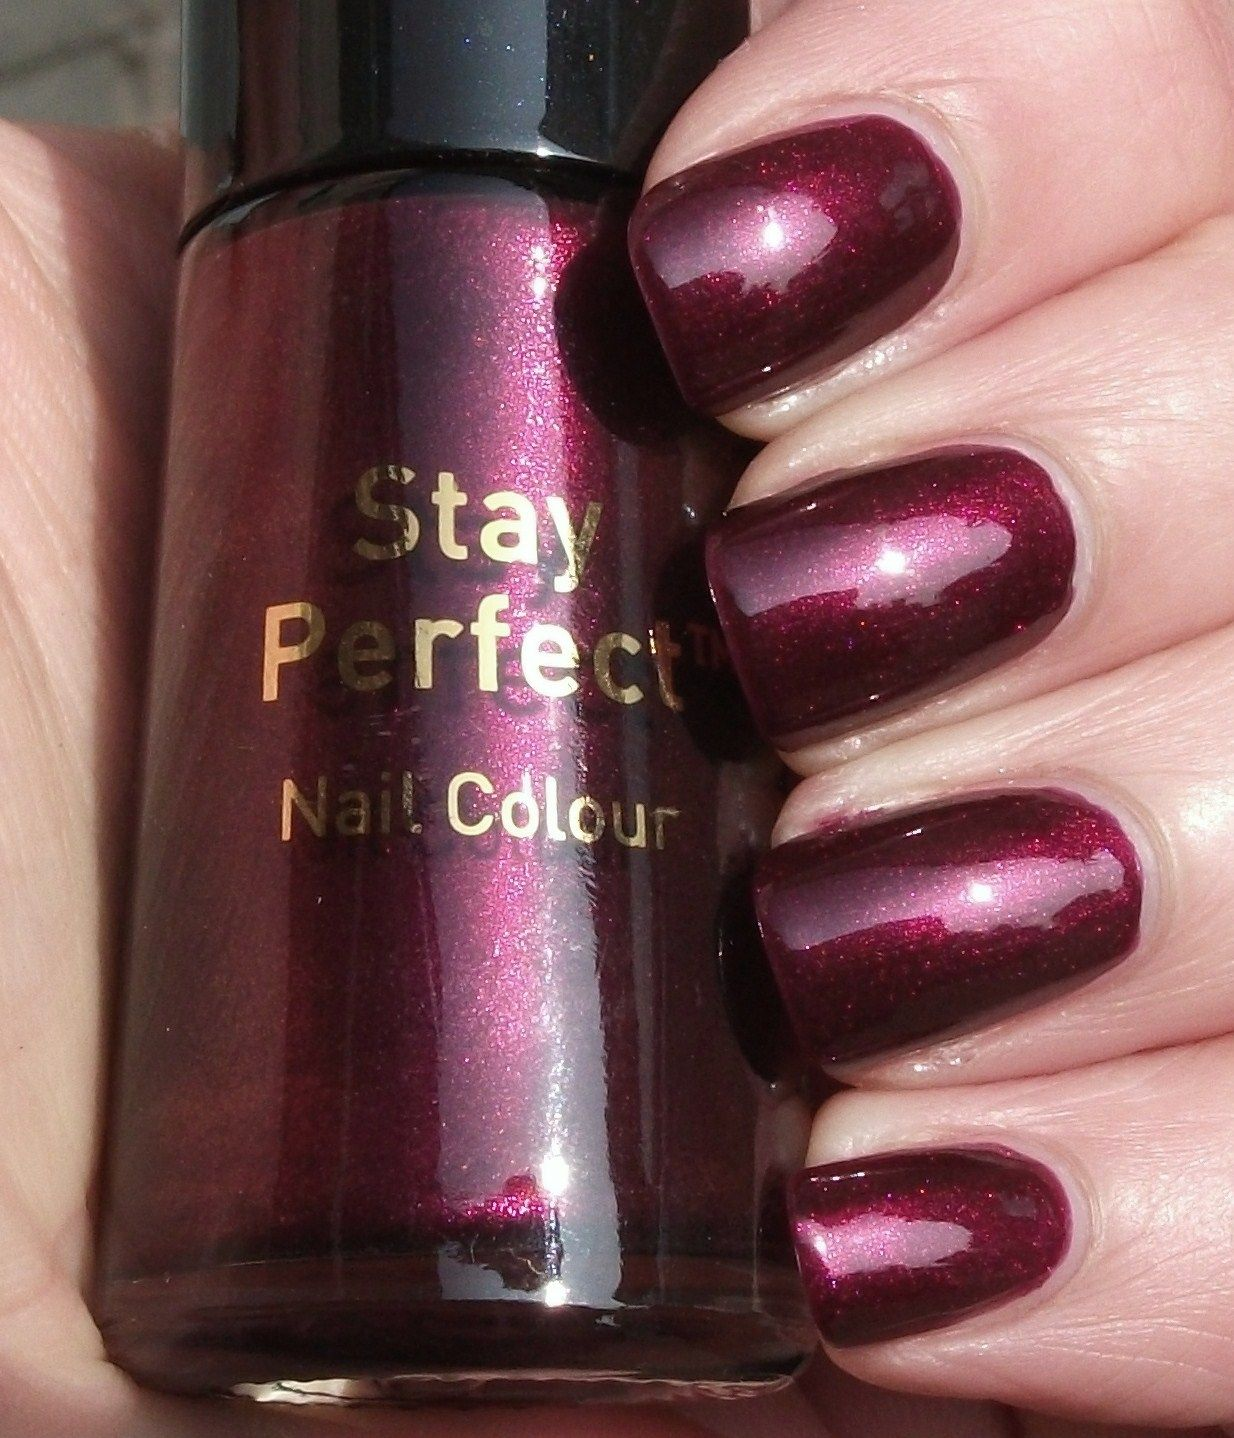 Boots No7 (Stay Perfect) Nail Colour \